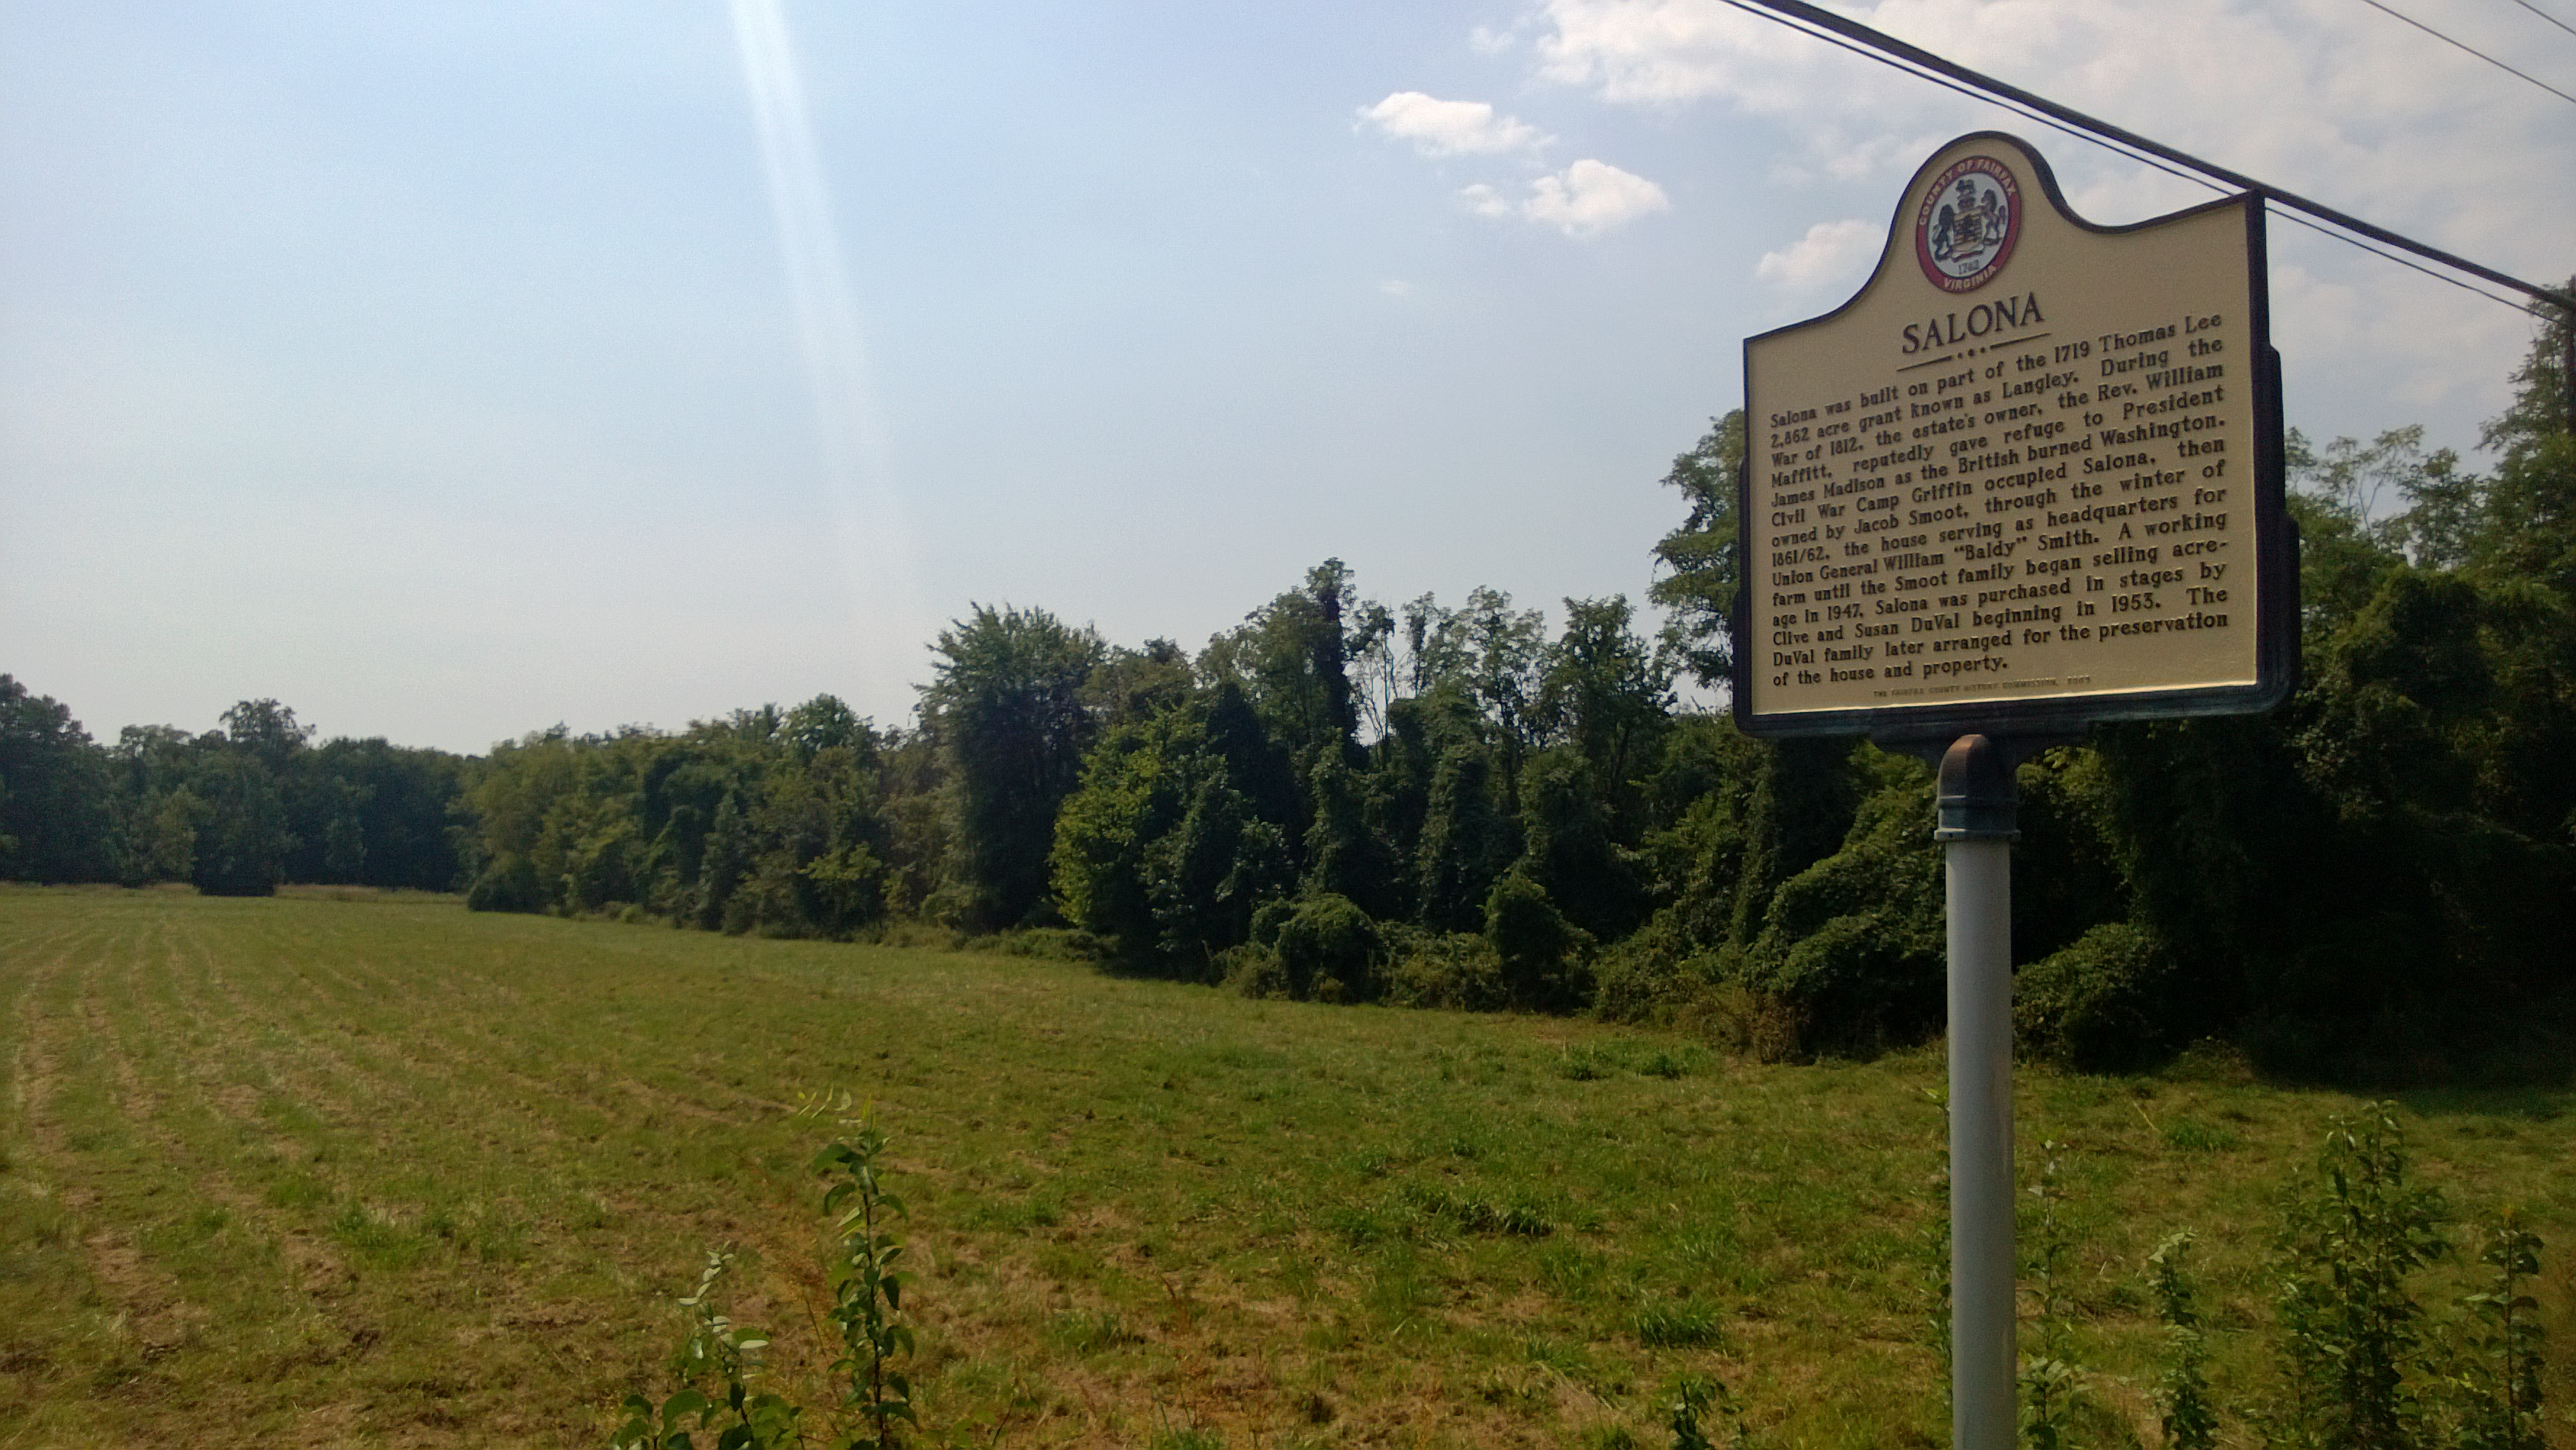 An image of the Salona (McLean, Virginia) field from the frontage on Dolly Madison Rd.